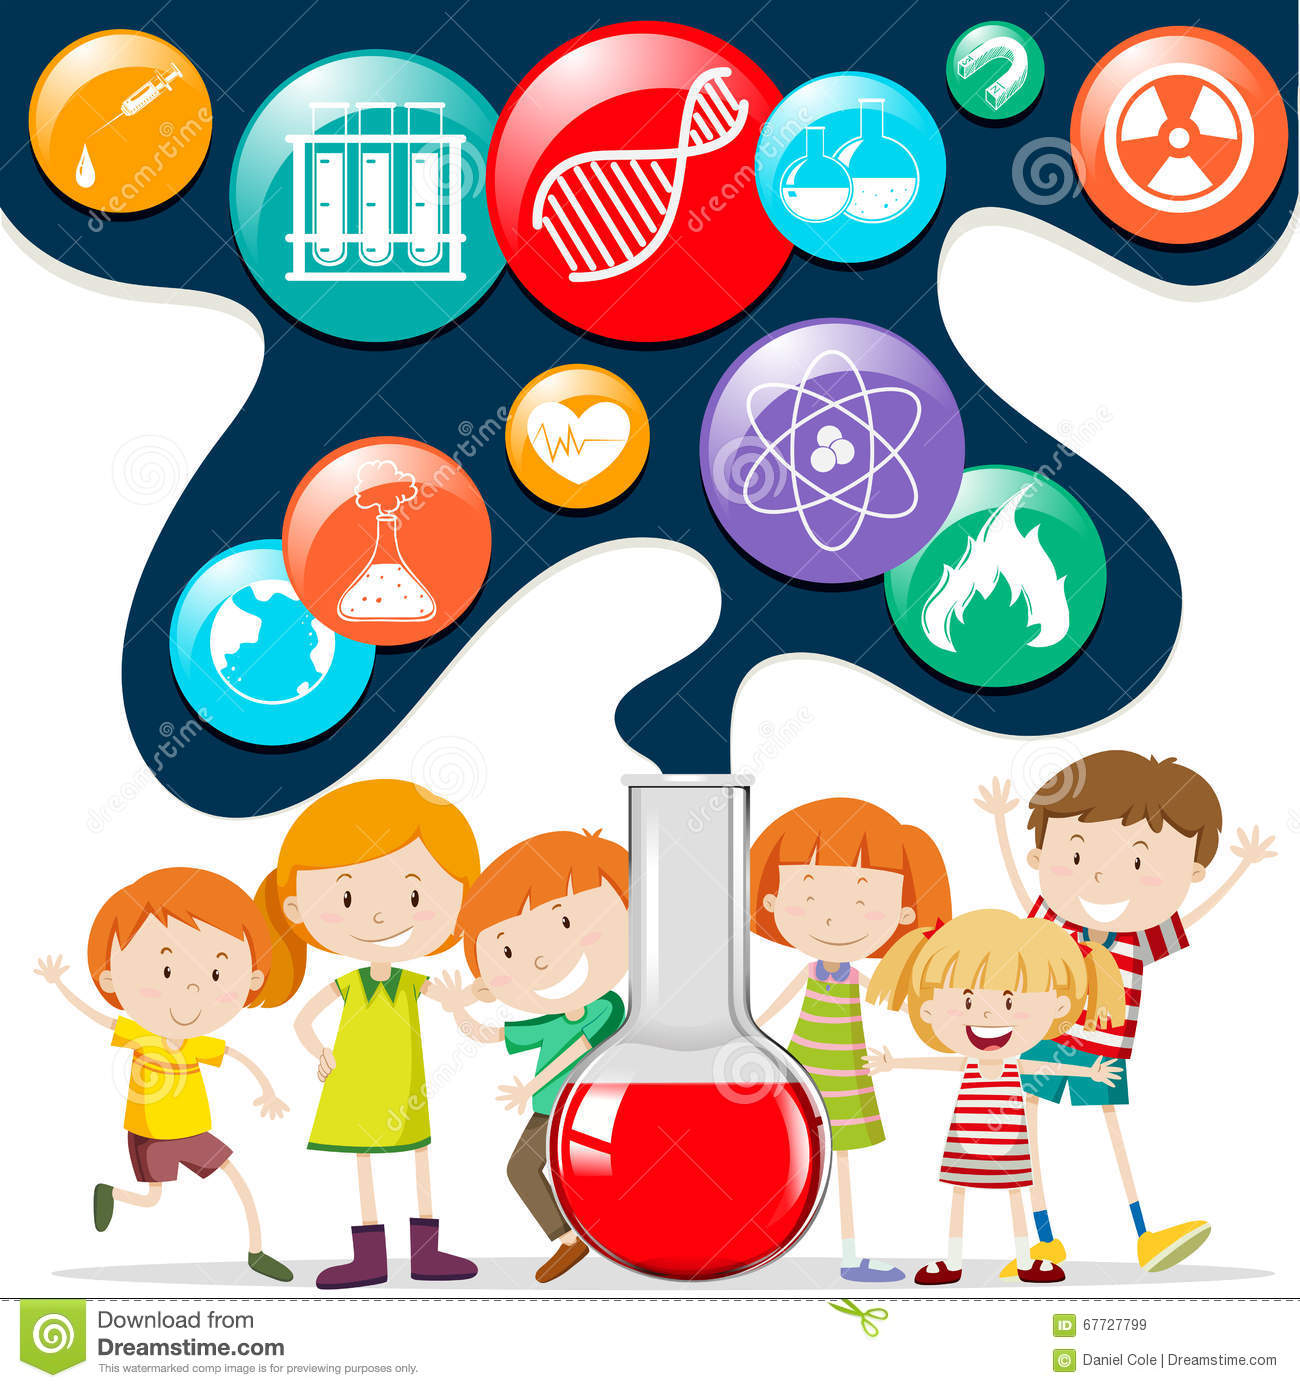 Children And Science Symbols Stock Vector - Image: 67727799